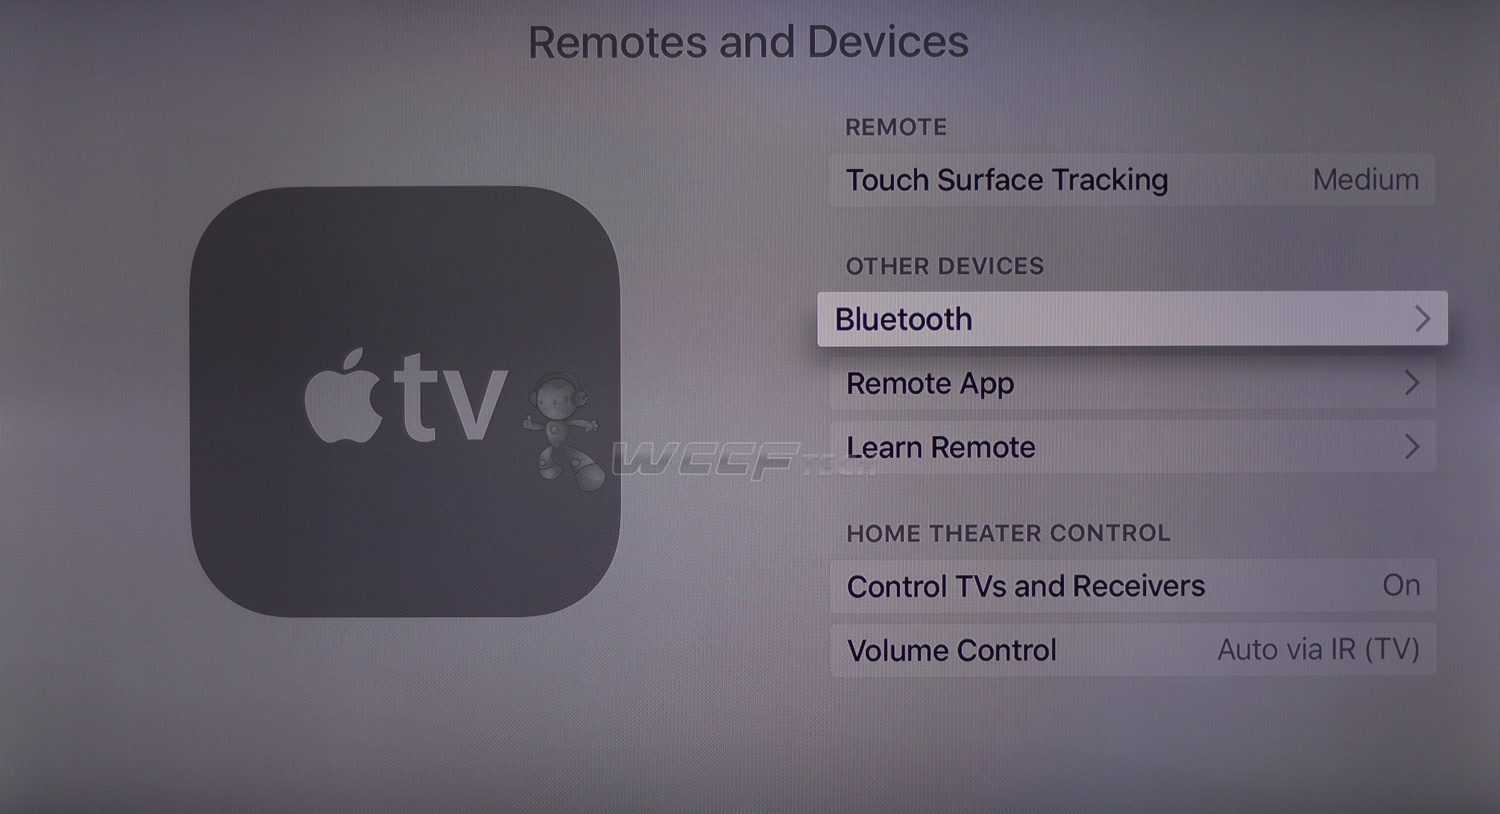 Pair Bluetooth Speakers And Headphones With Apple TV 4 - How To